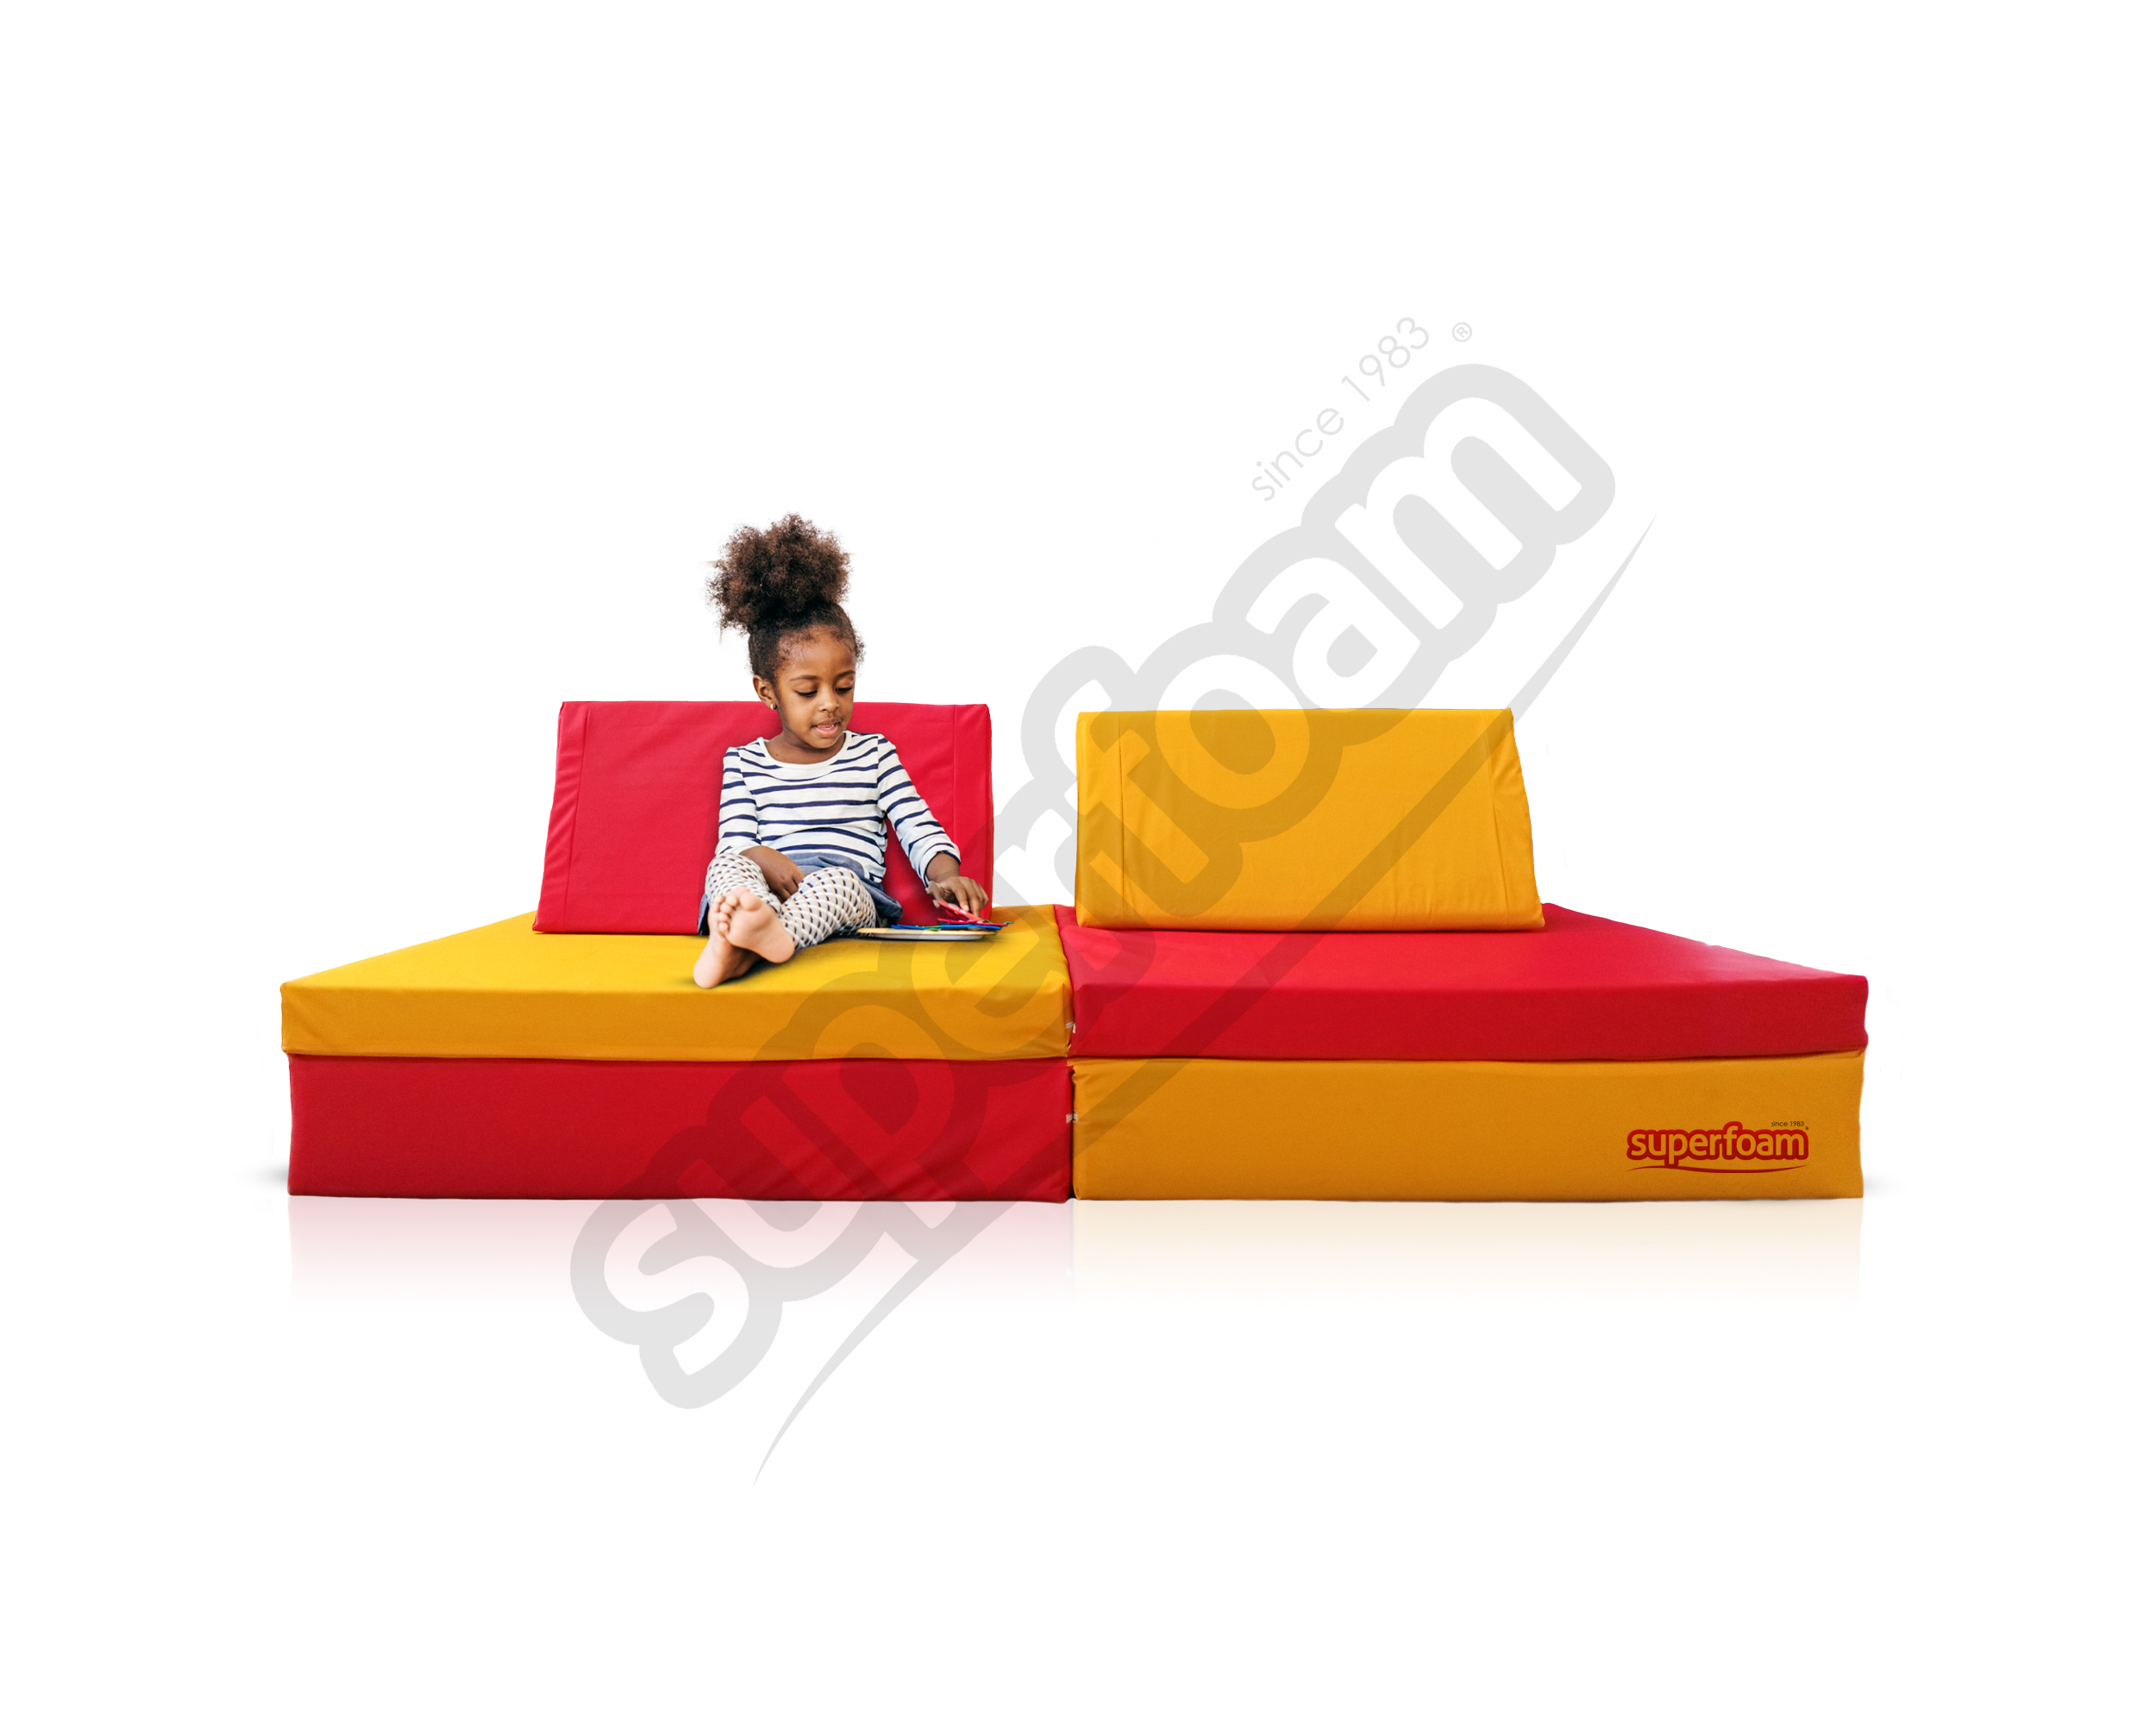 Superfoam play bed